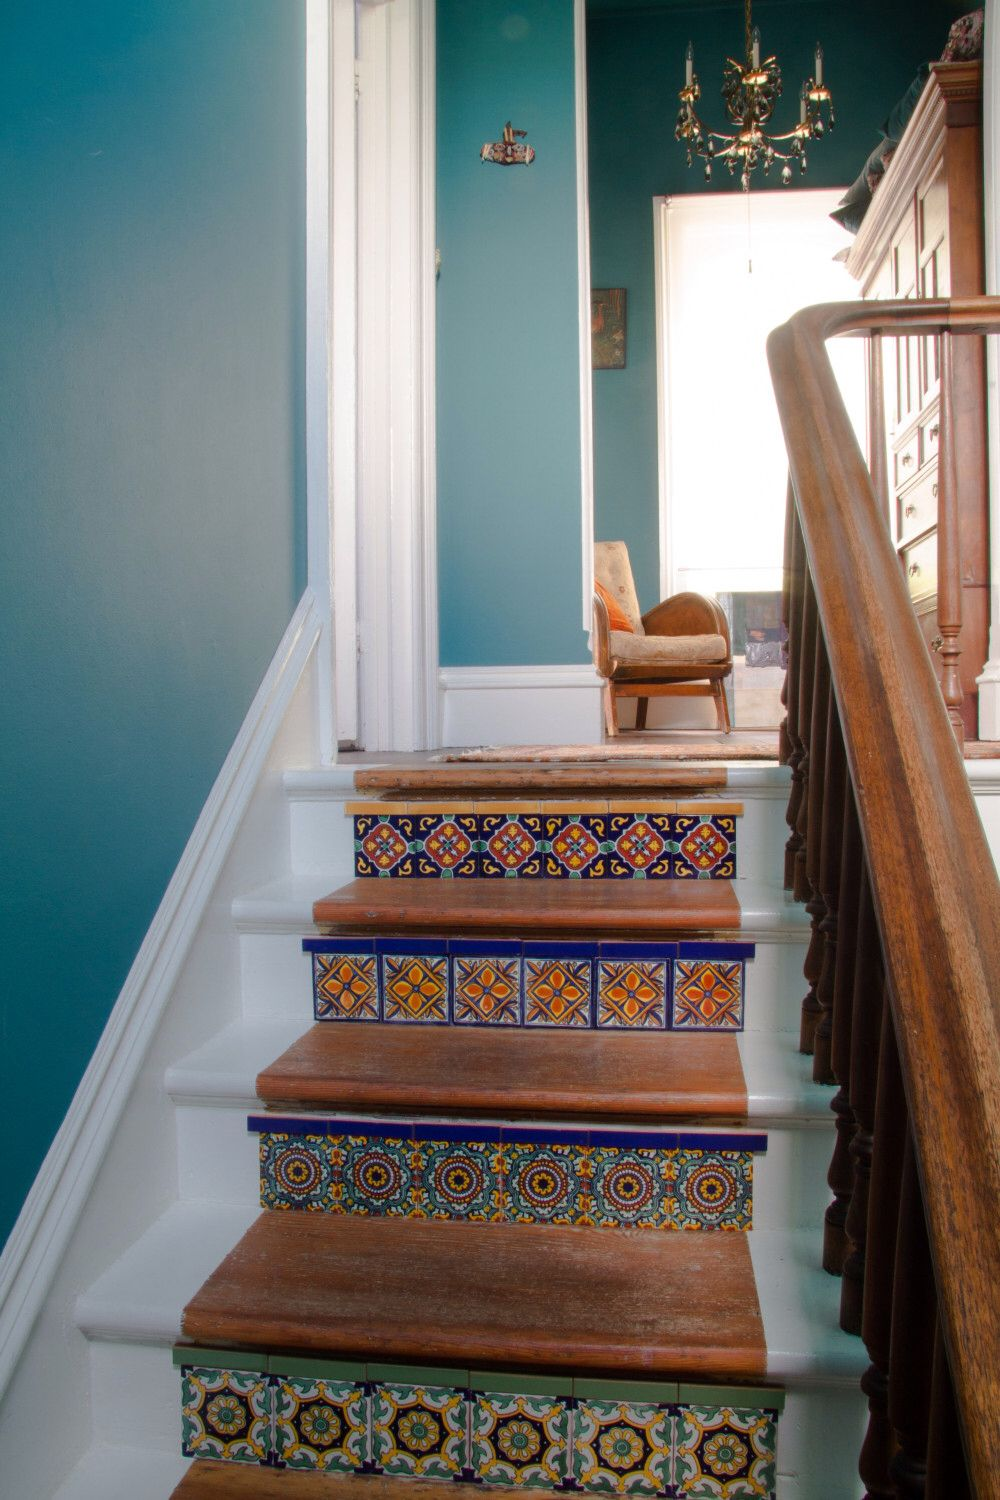 Best Pin By Sabra Hull On Home Decorating In 2020 Stairs New 400 x 300